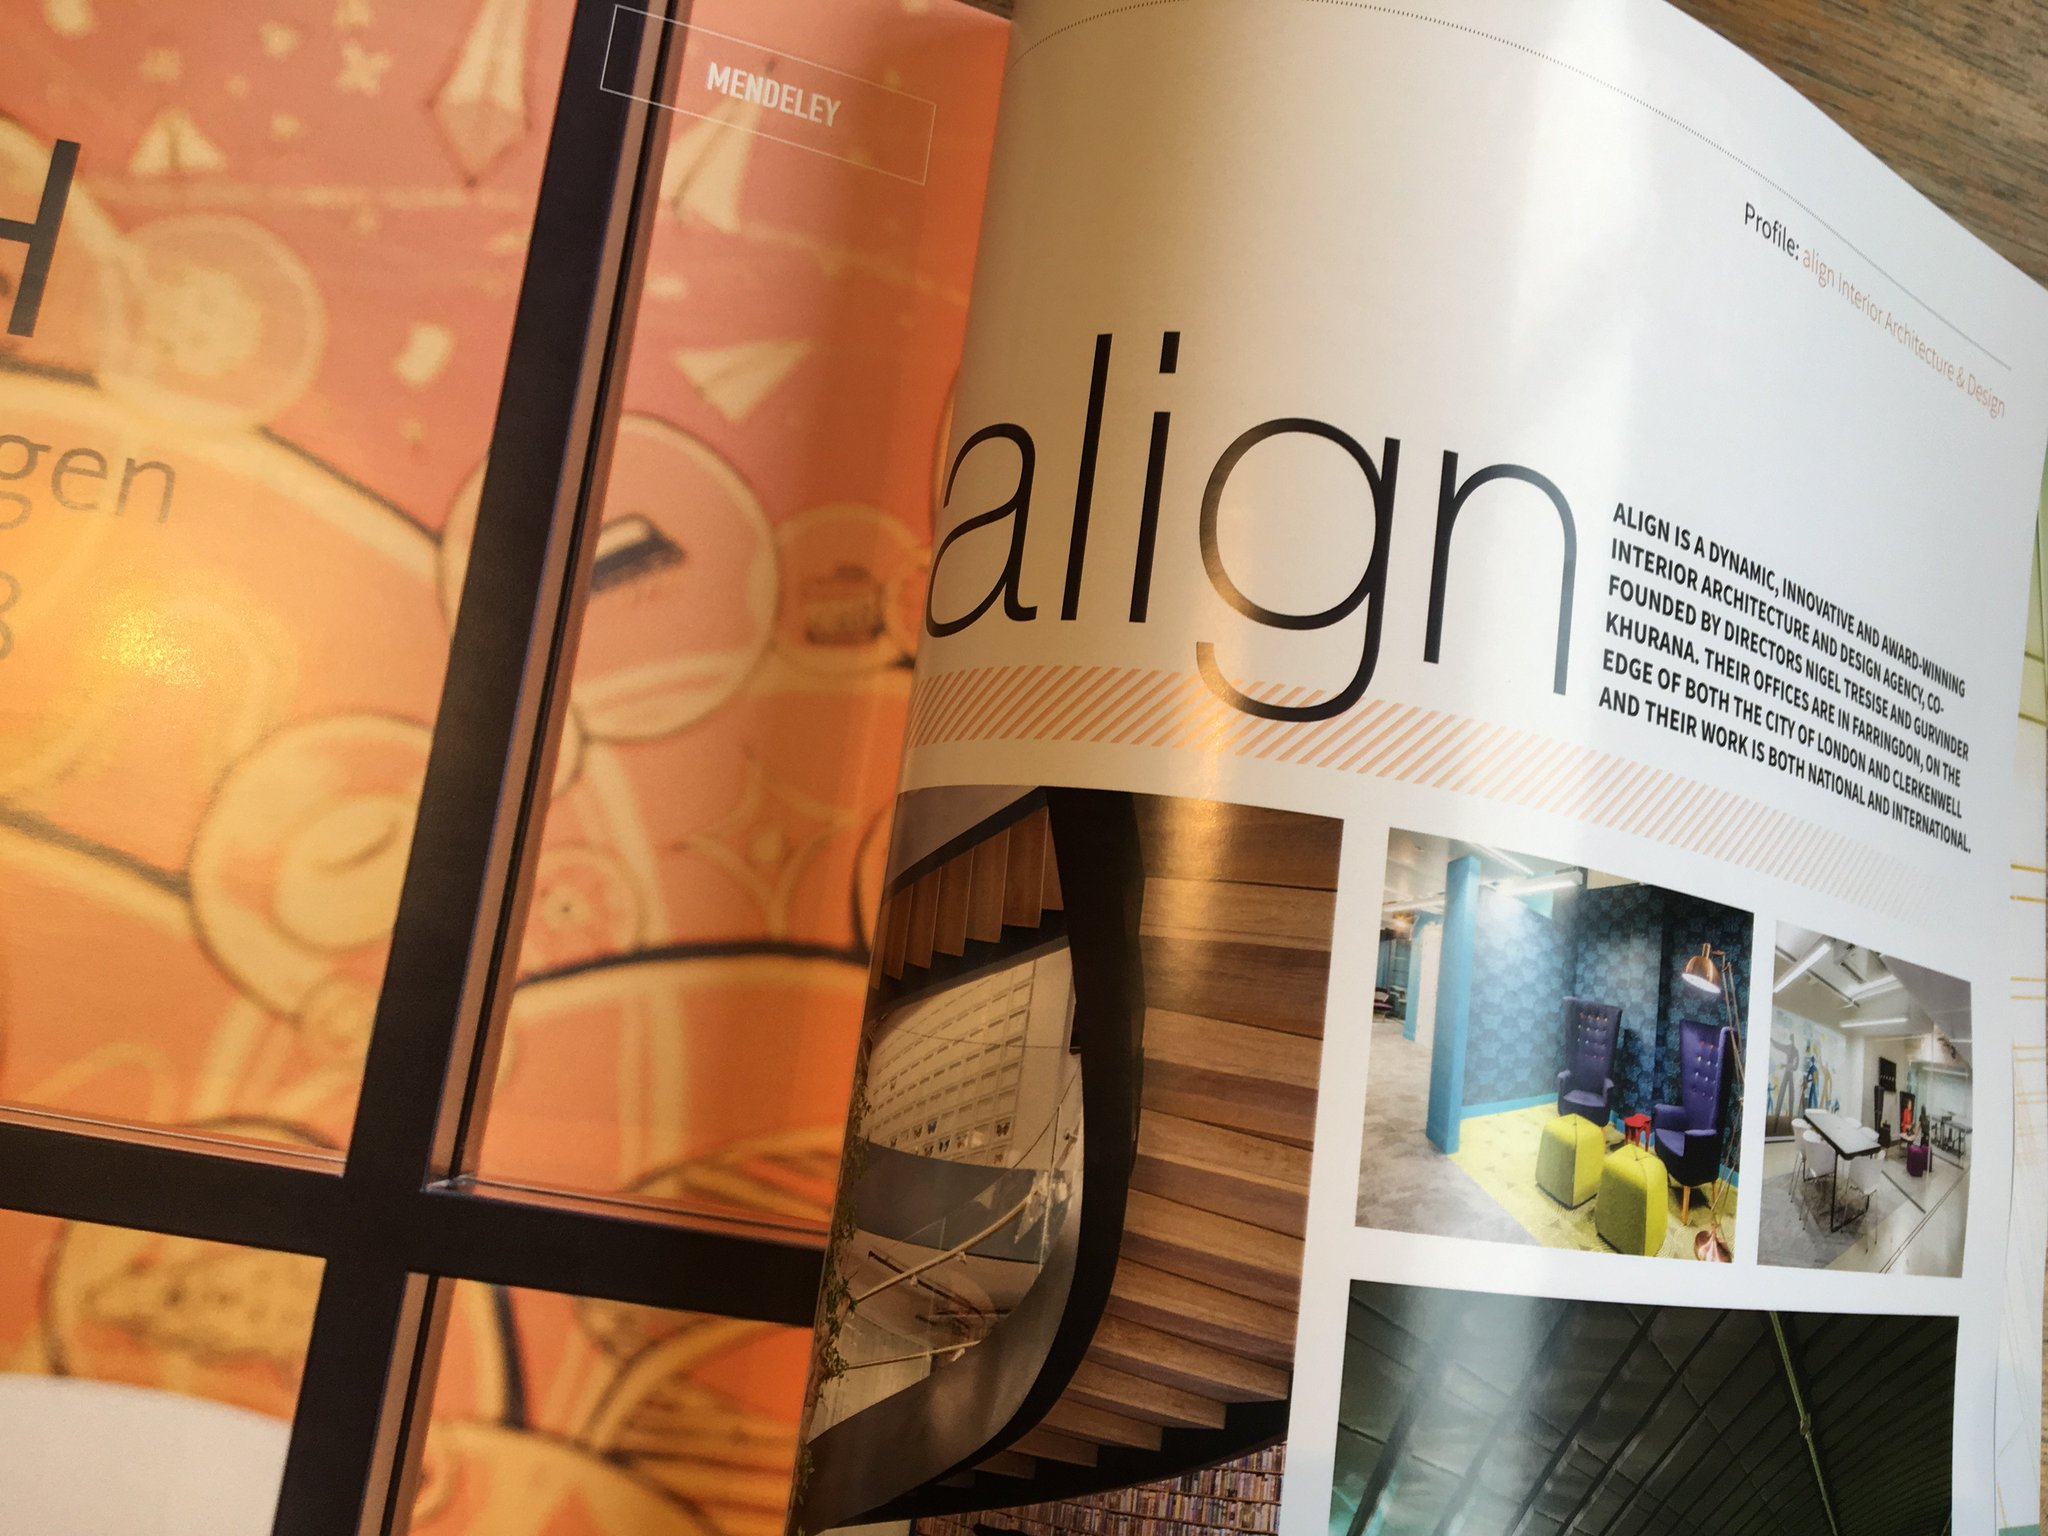 Align On Twitter Align Is A Dynamic Innovative And Award Winning Interior Architecture And Design Agency So Begins The Amazing 6 Page Profile Of Our Business In The New Premier Construction Magazine Https T Co Gavxzpp48m